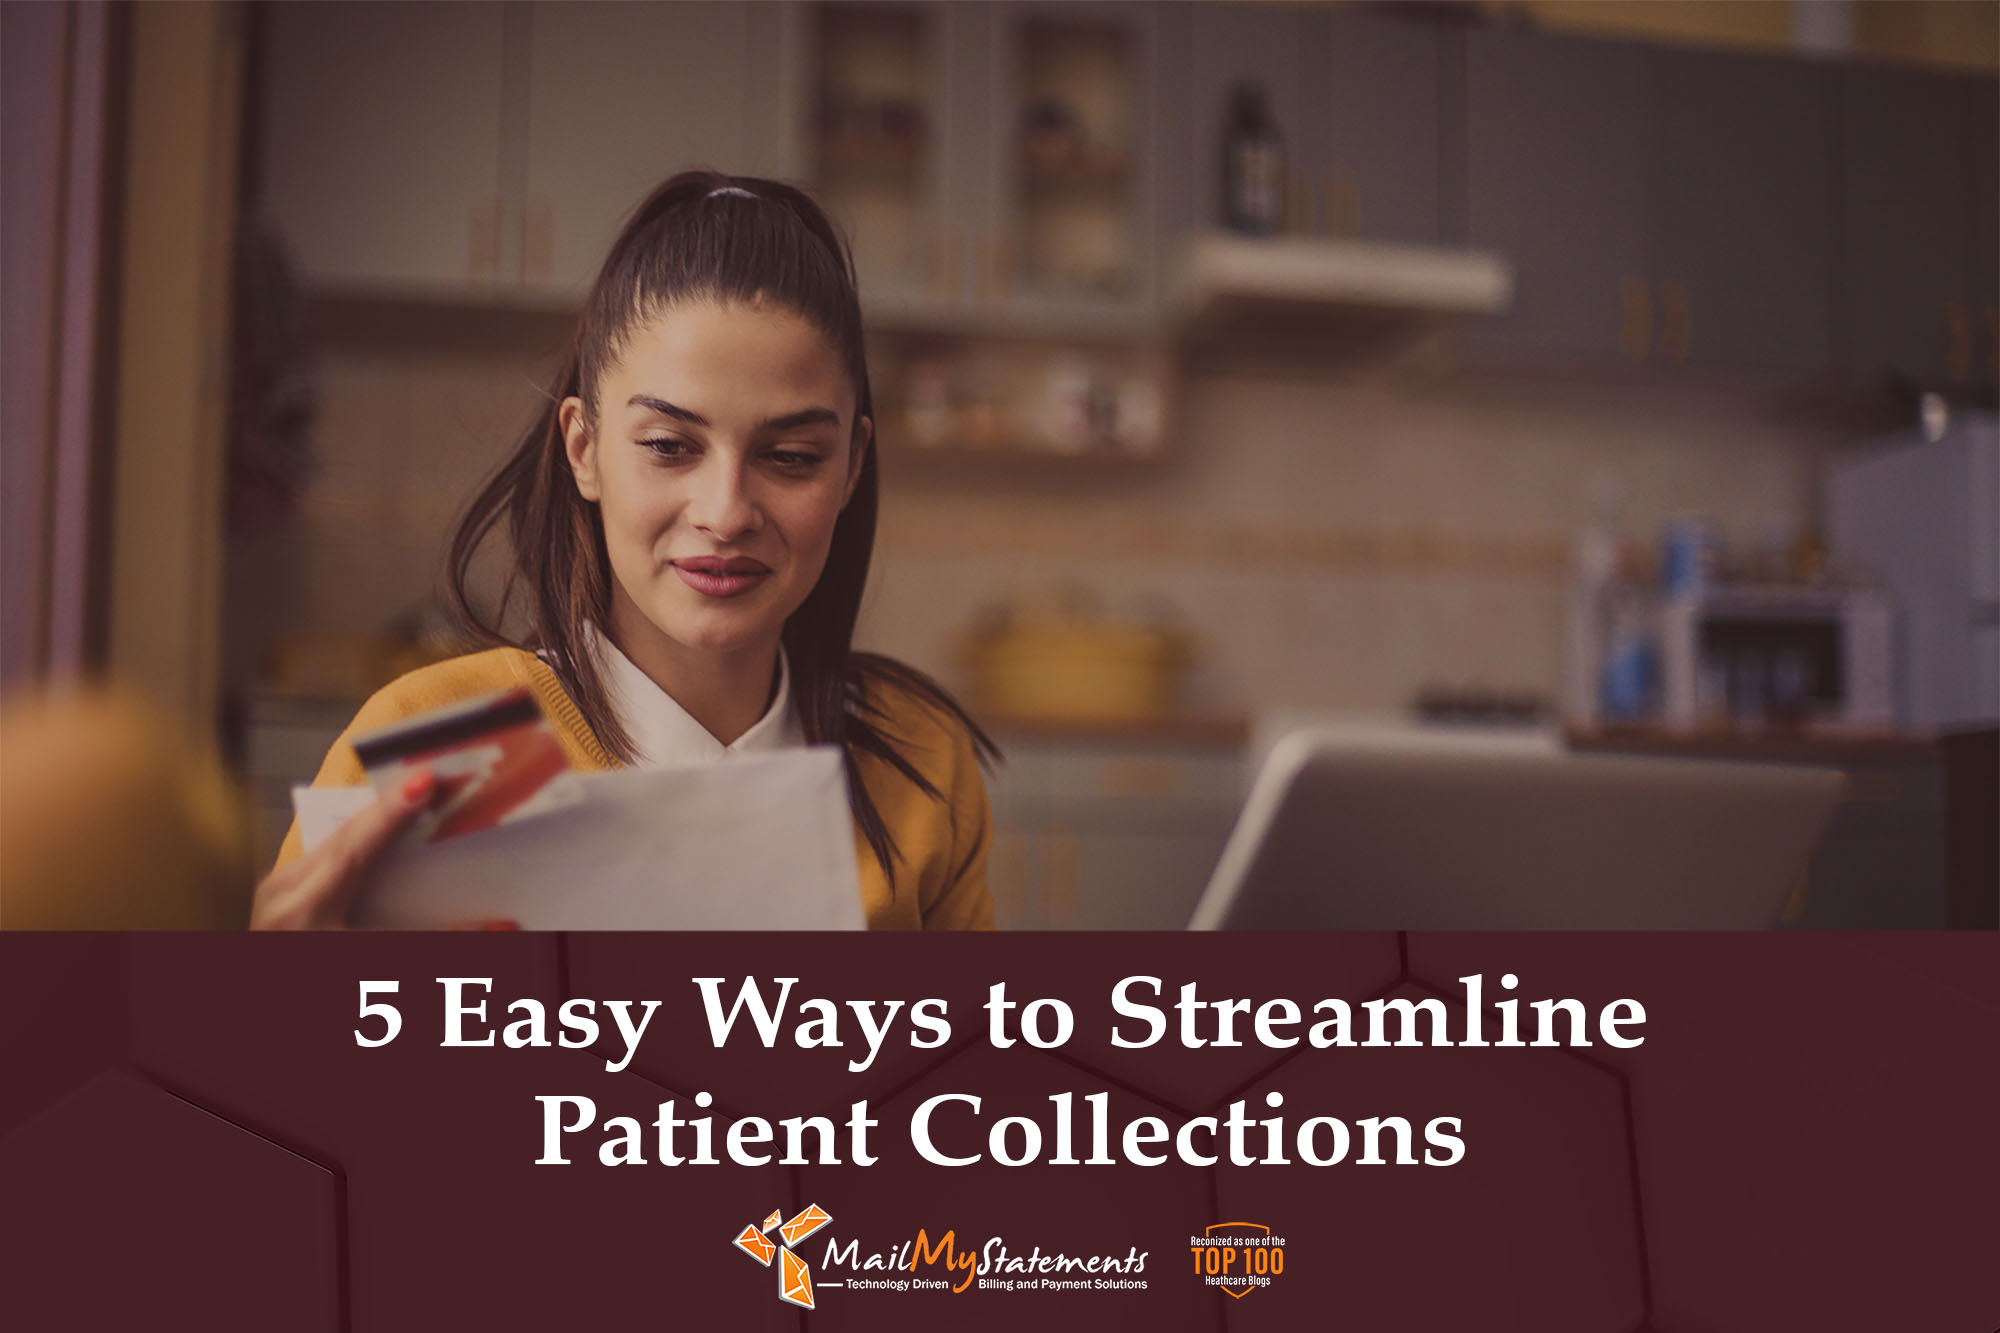 5 Easy Ways to Streamline Patient Collections